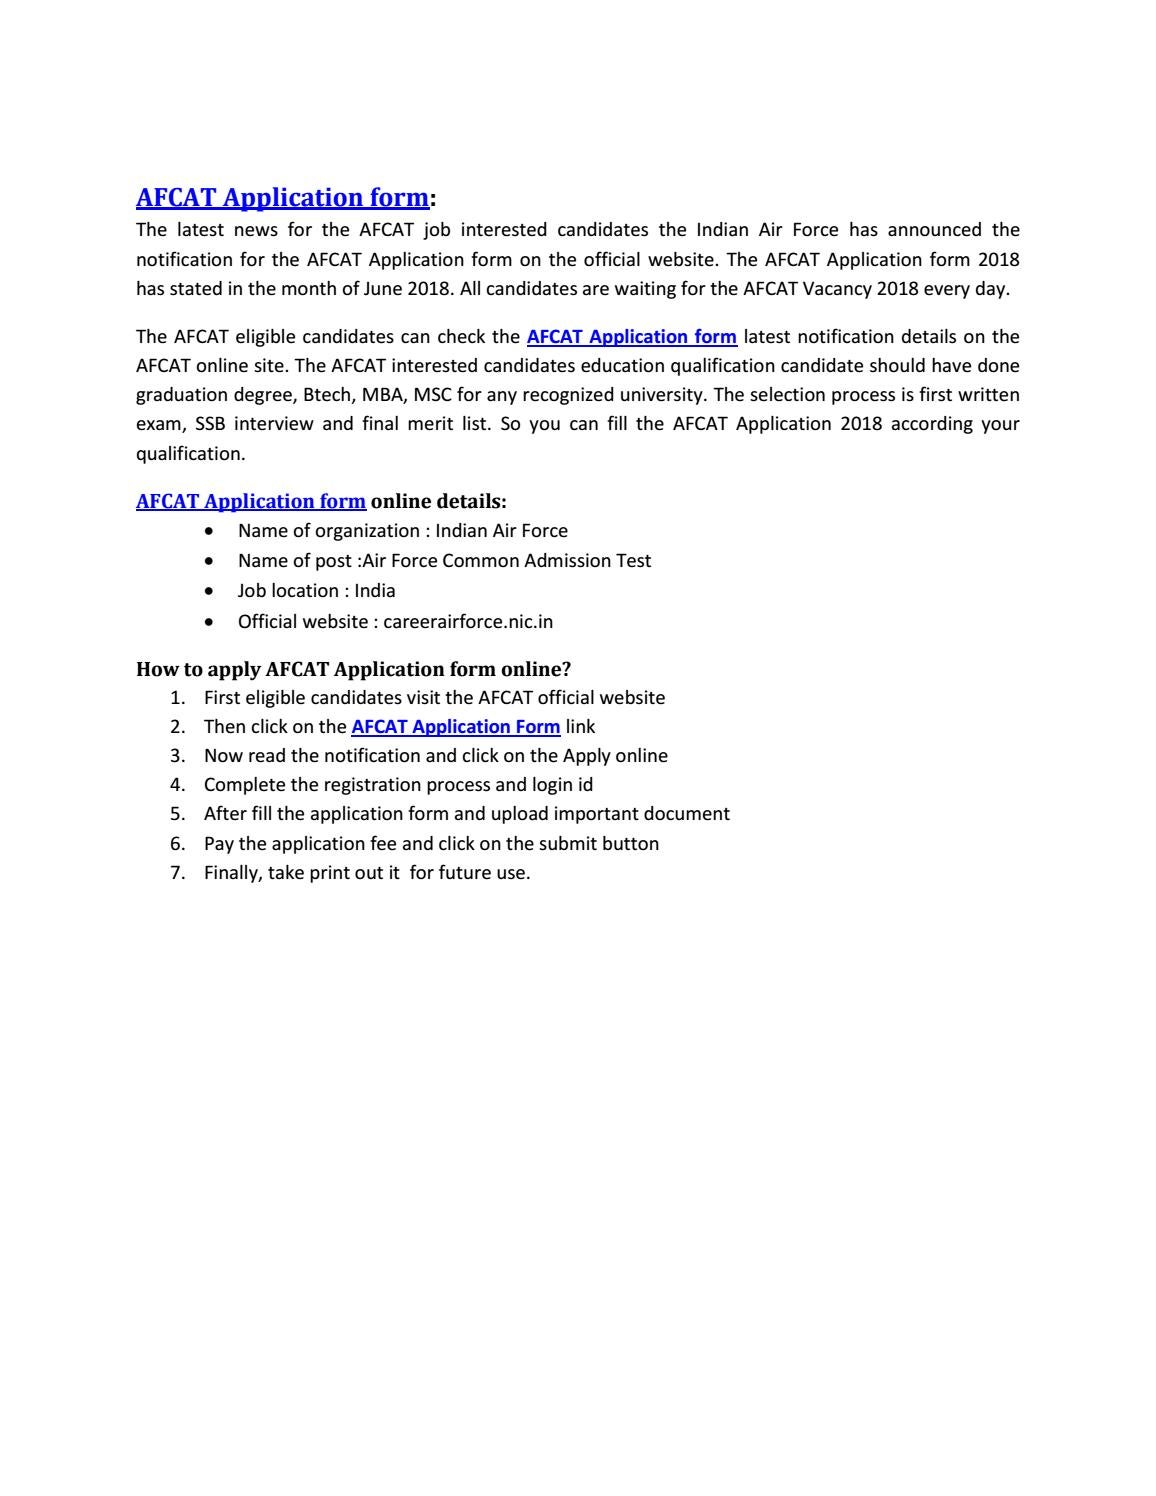 Afcat application form by sahuri choudhary - issuu